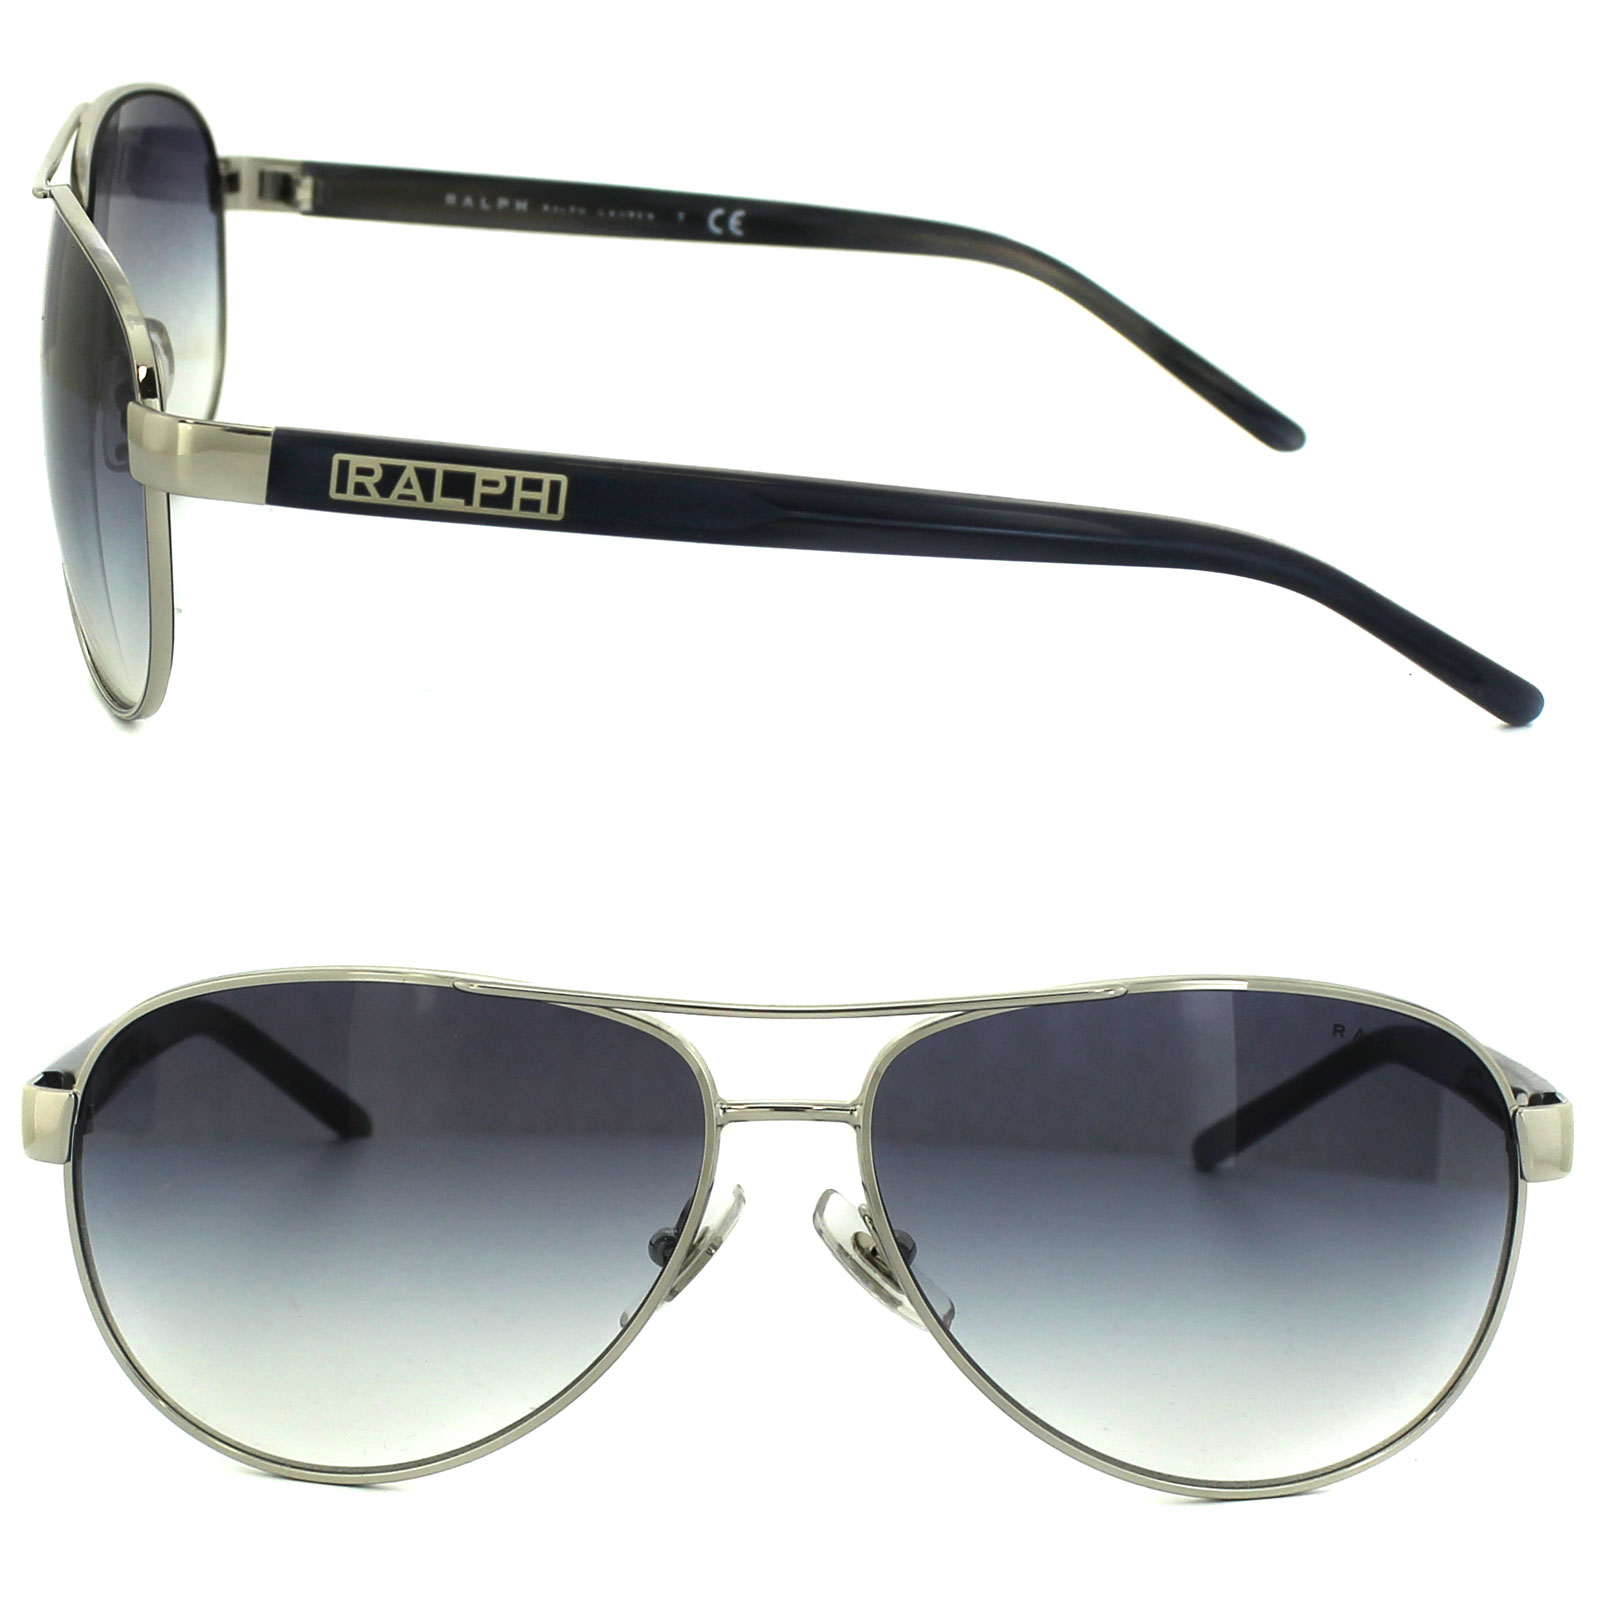 39b03fb4ac Sentinel Ralph by Ralph Lauren Sunglasses 4004 102 19 Silver   Blue Grey  Light Blue Gradi